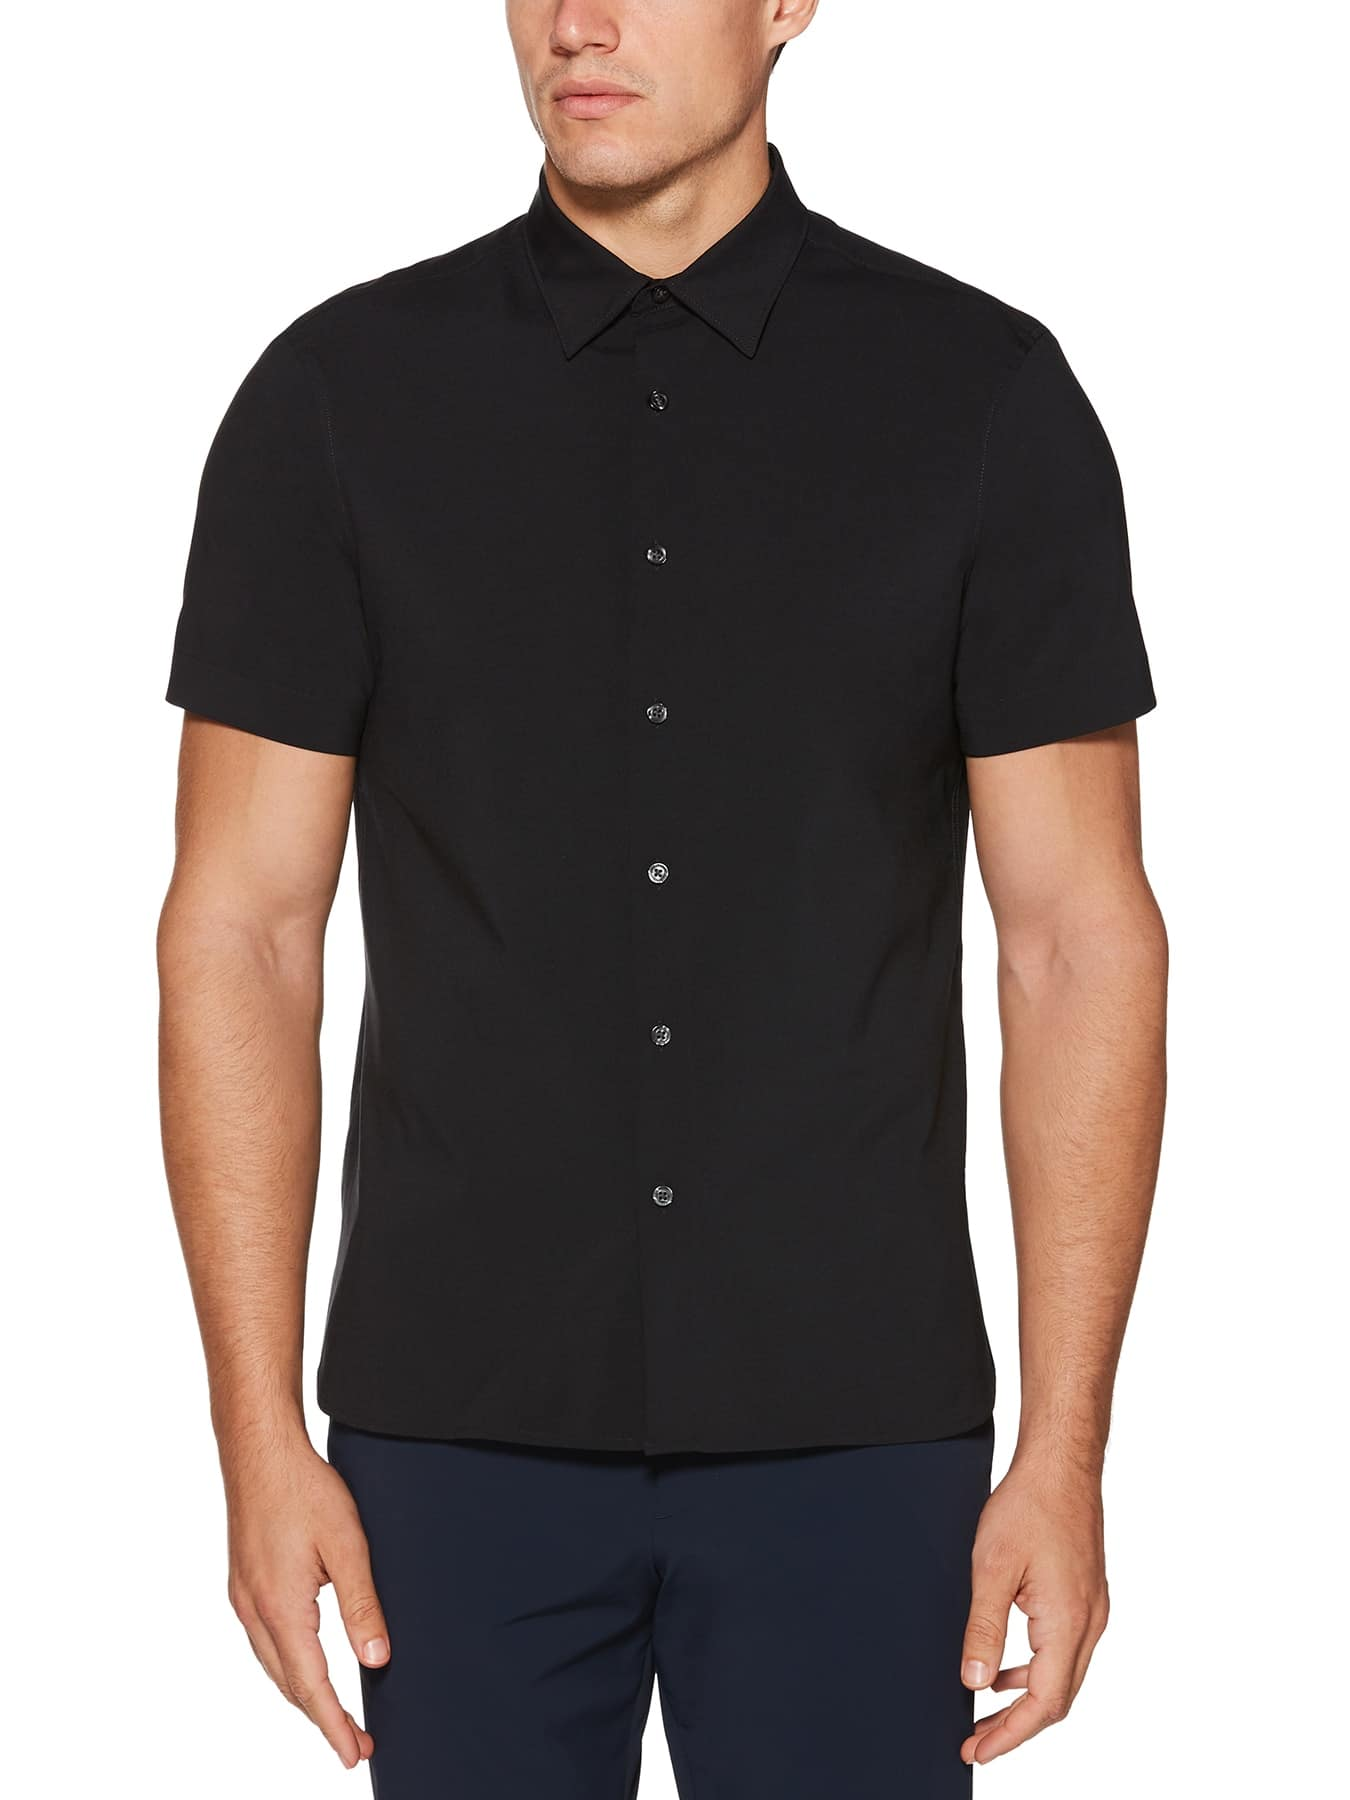 Perry Ellis Coupon for 40% off Sitewide: Shirts from $18, Polos/Knits from $12, Pants from $18